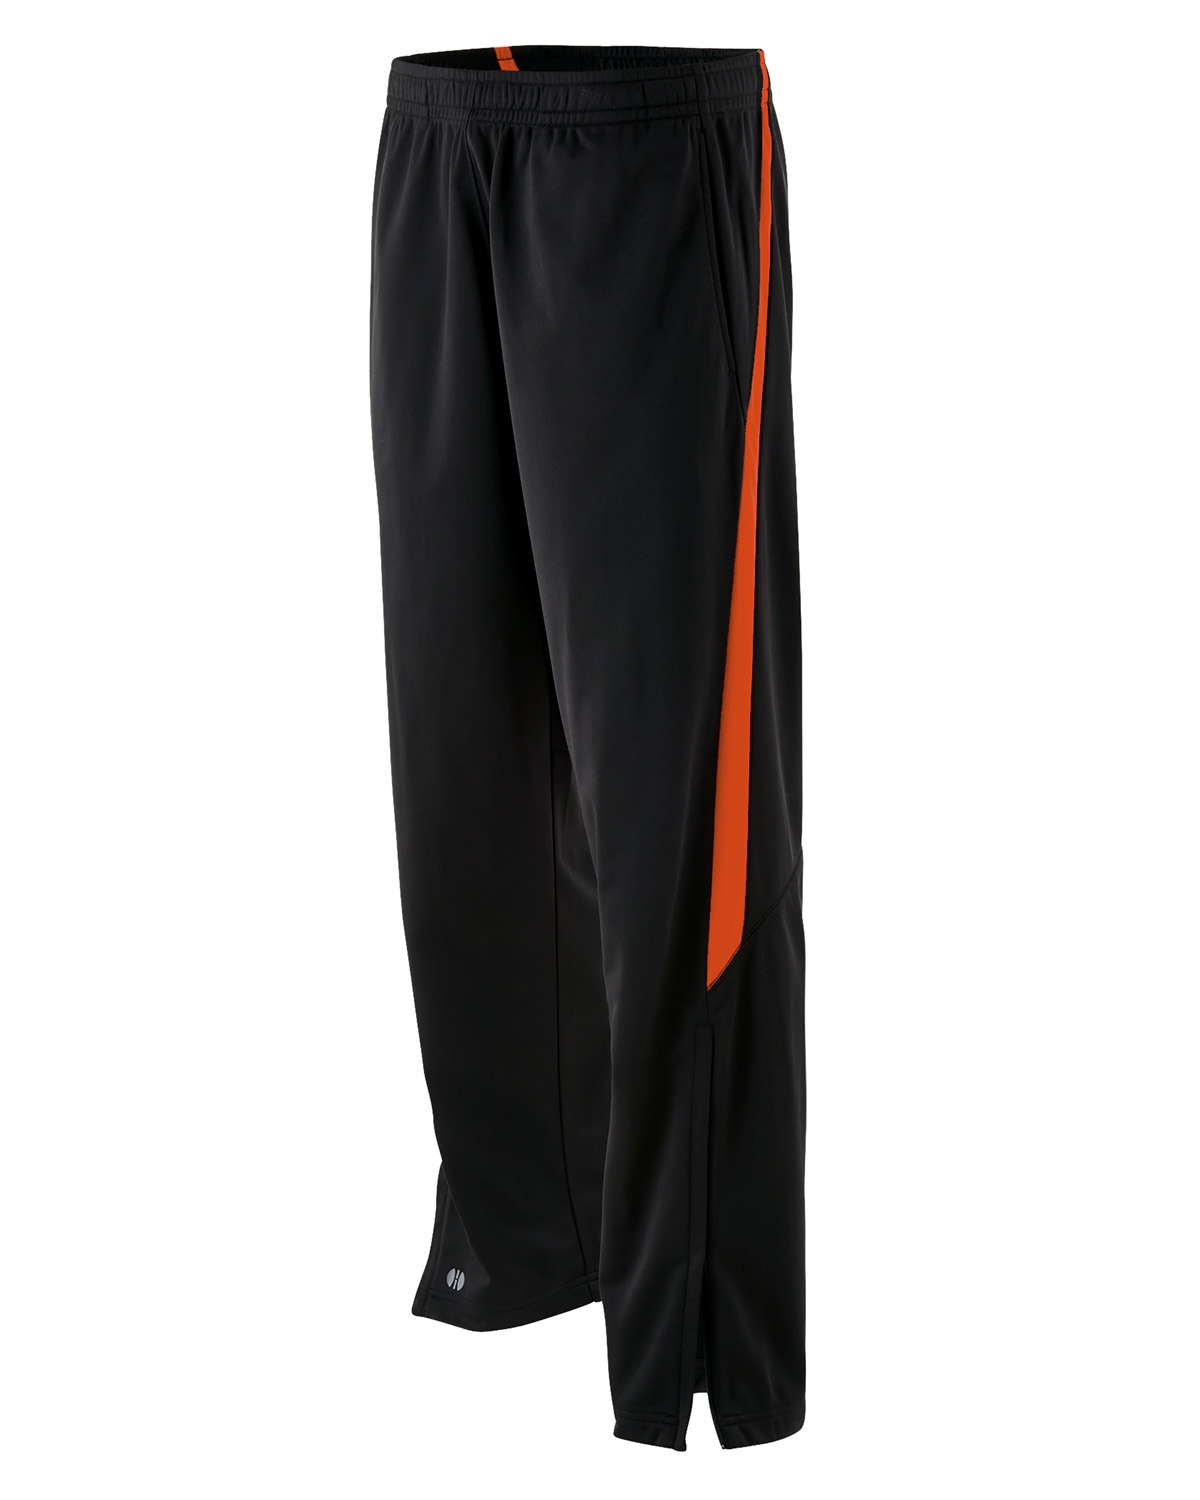 Holloway 229143 - Adult Polyester Determination Pant